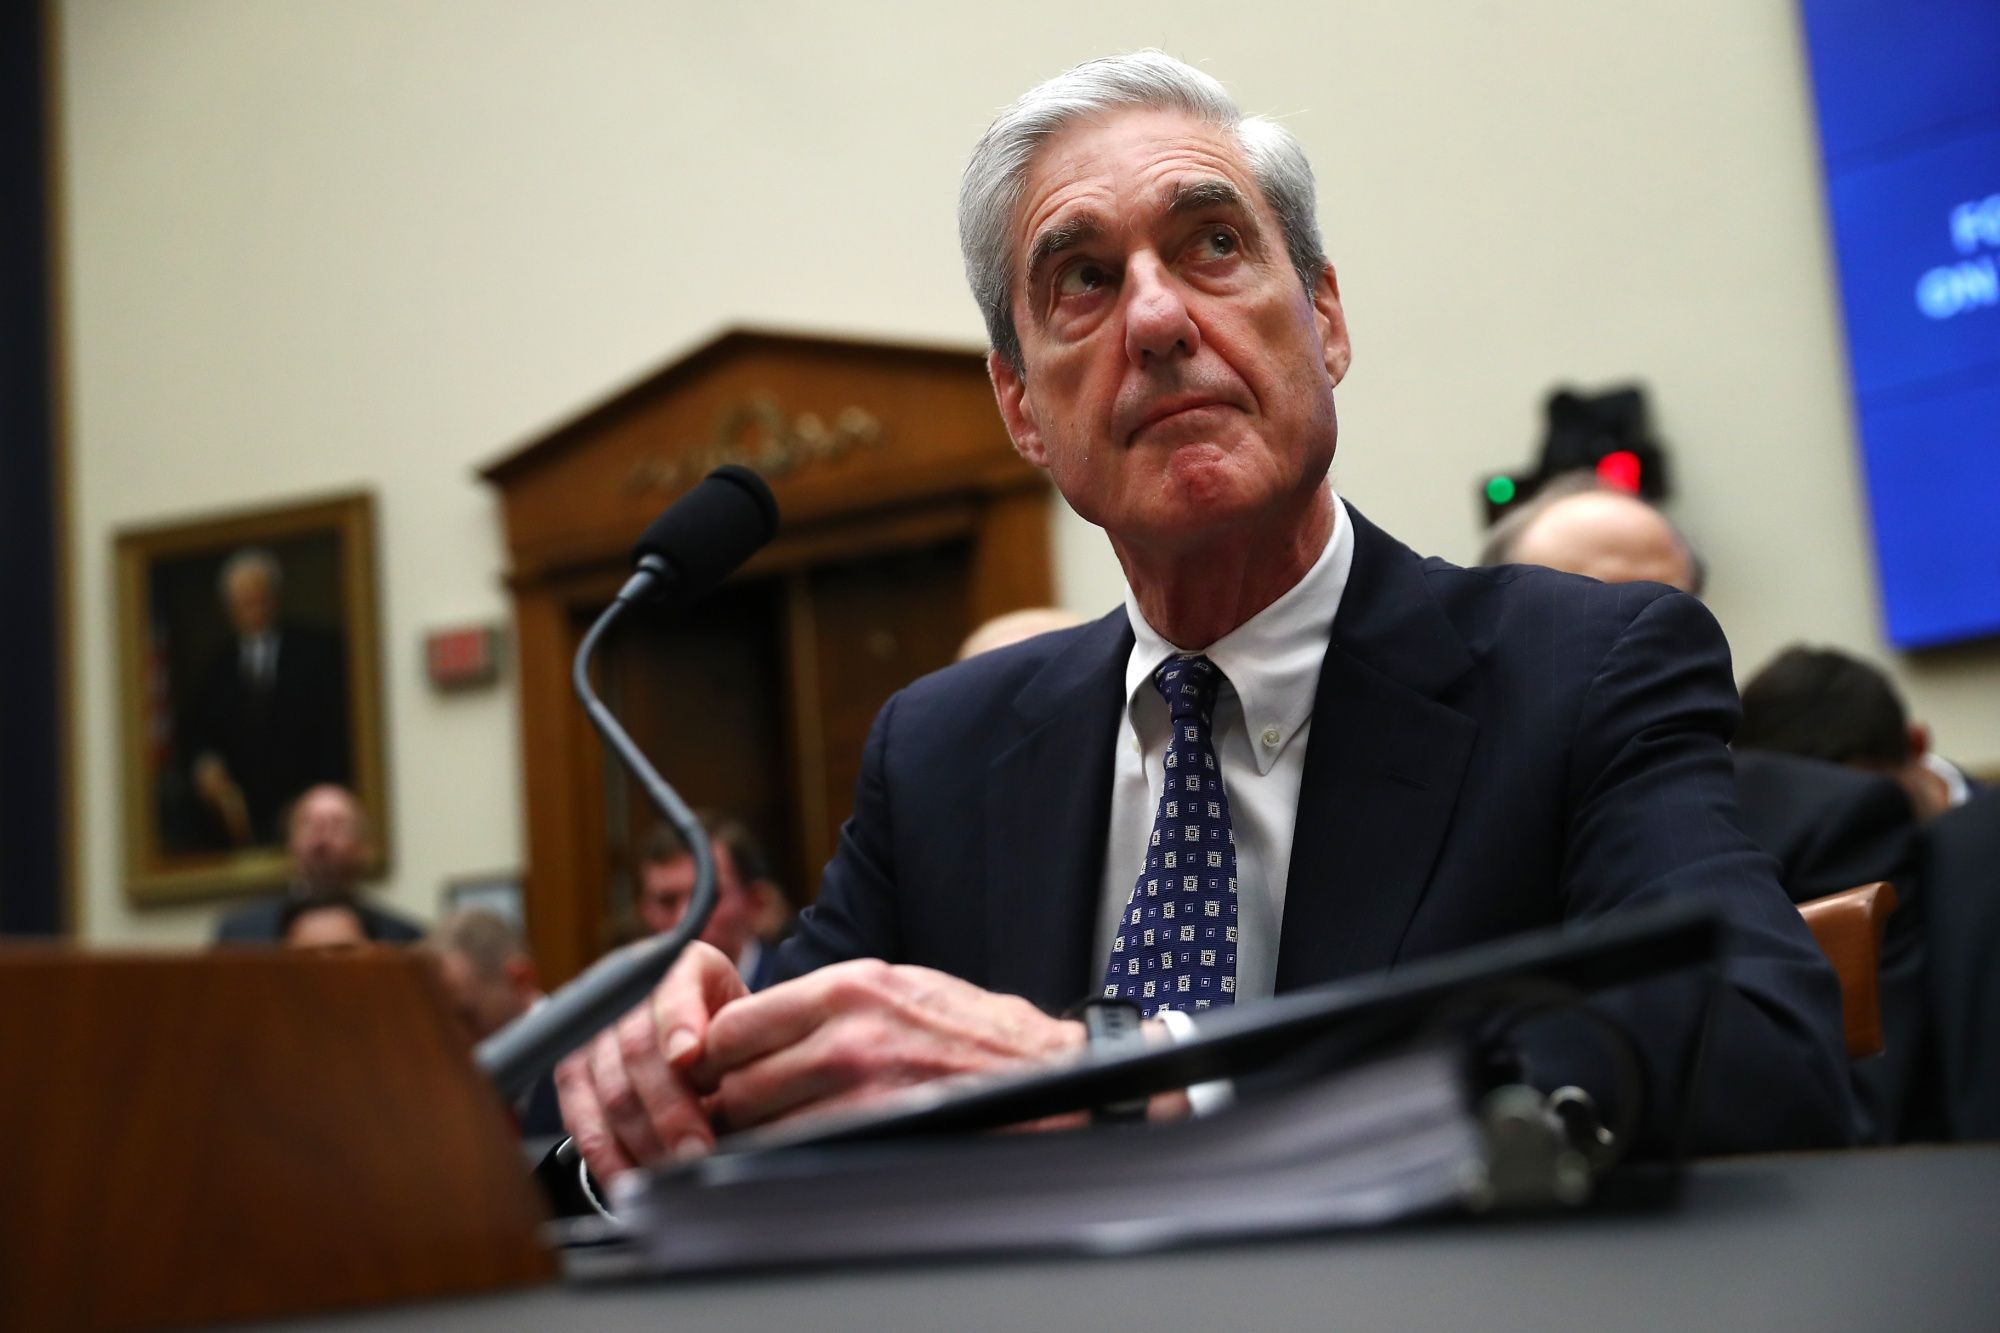 Democrats Raise Impeaching Trump in Suit for Muellers Evidence